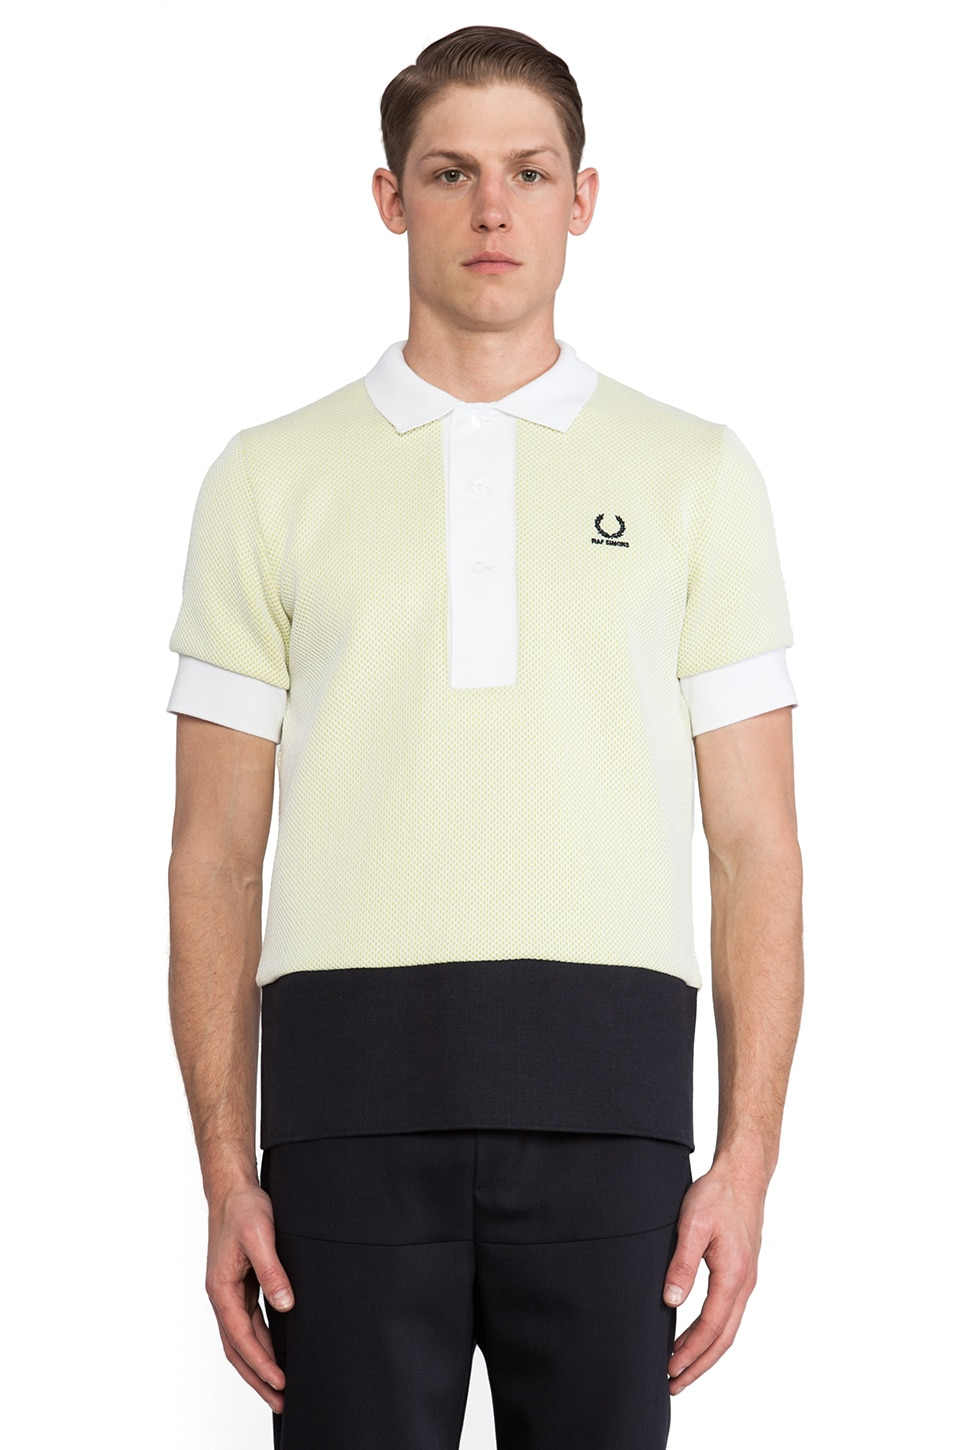 Fred Perry x Raf Simons Mesh Colour Block Fred Perry Shirt in White